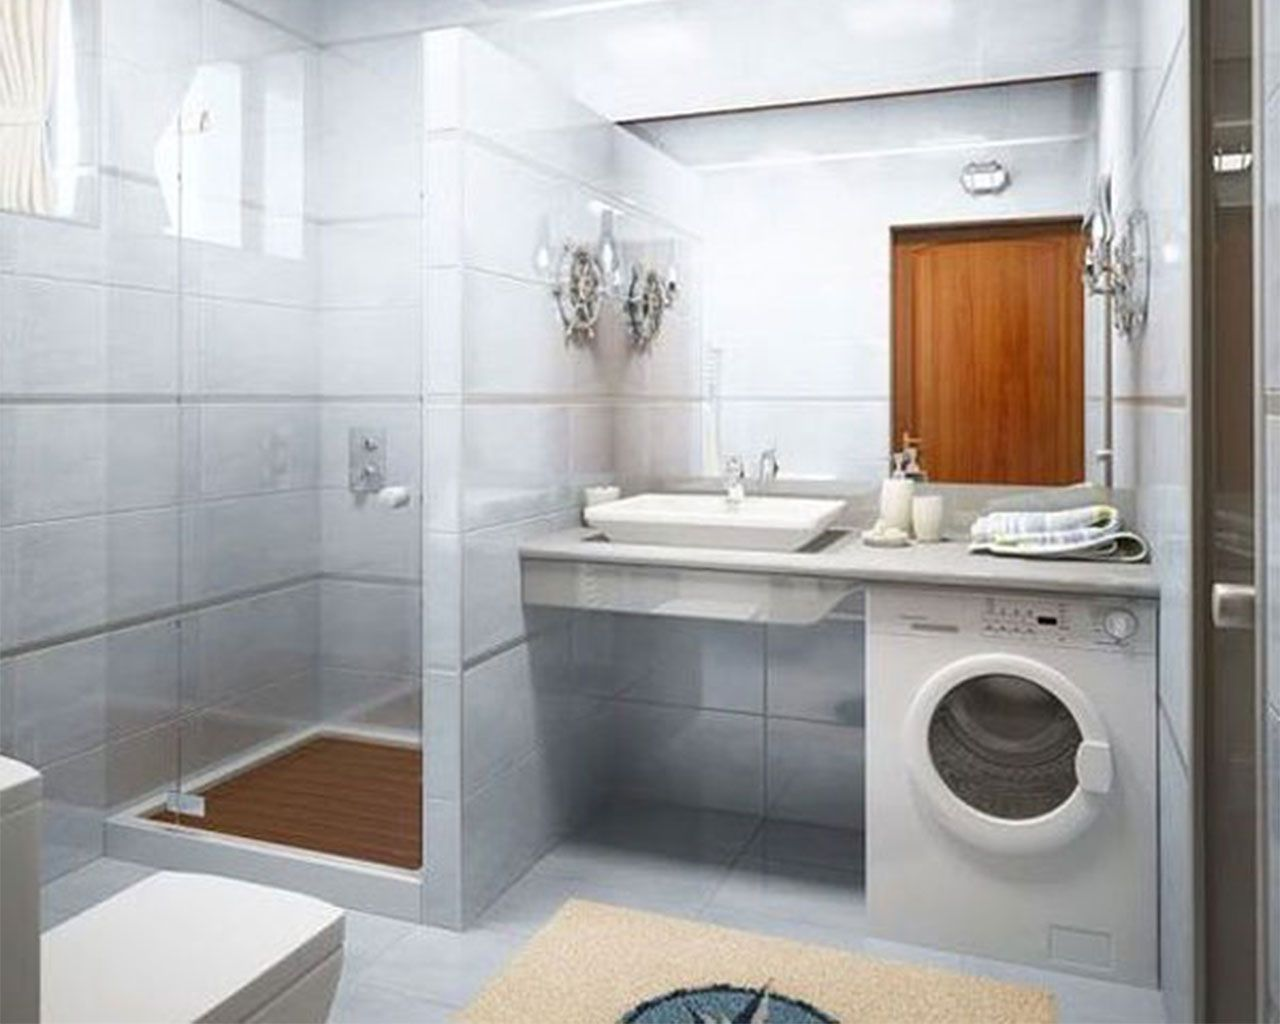 Fresh Find Simple Bathroom Ideas Design With Trendy Arrangement - Simple bathroom renovations for small bathroom ideas